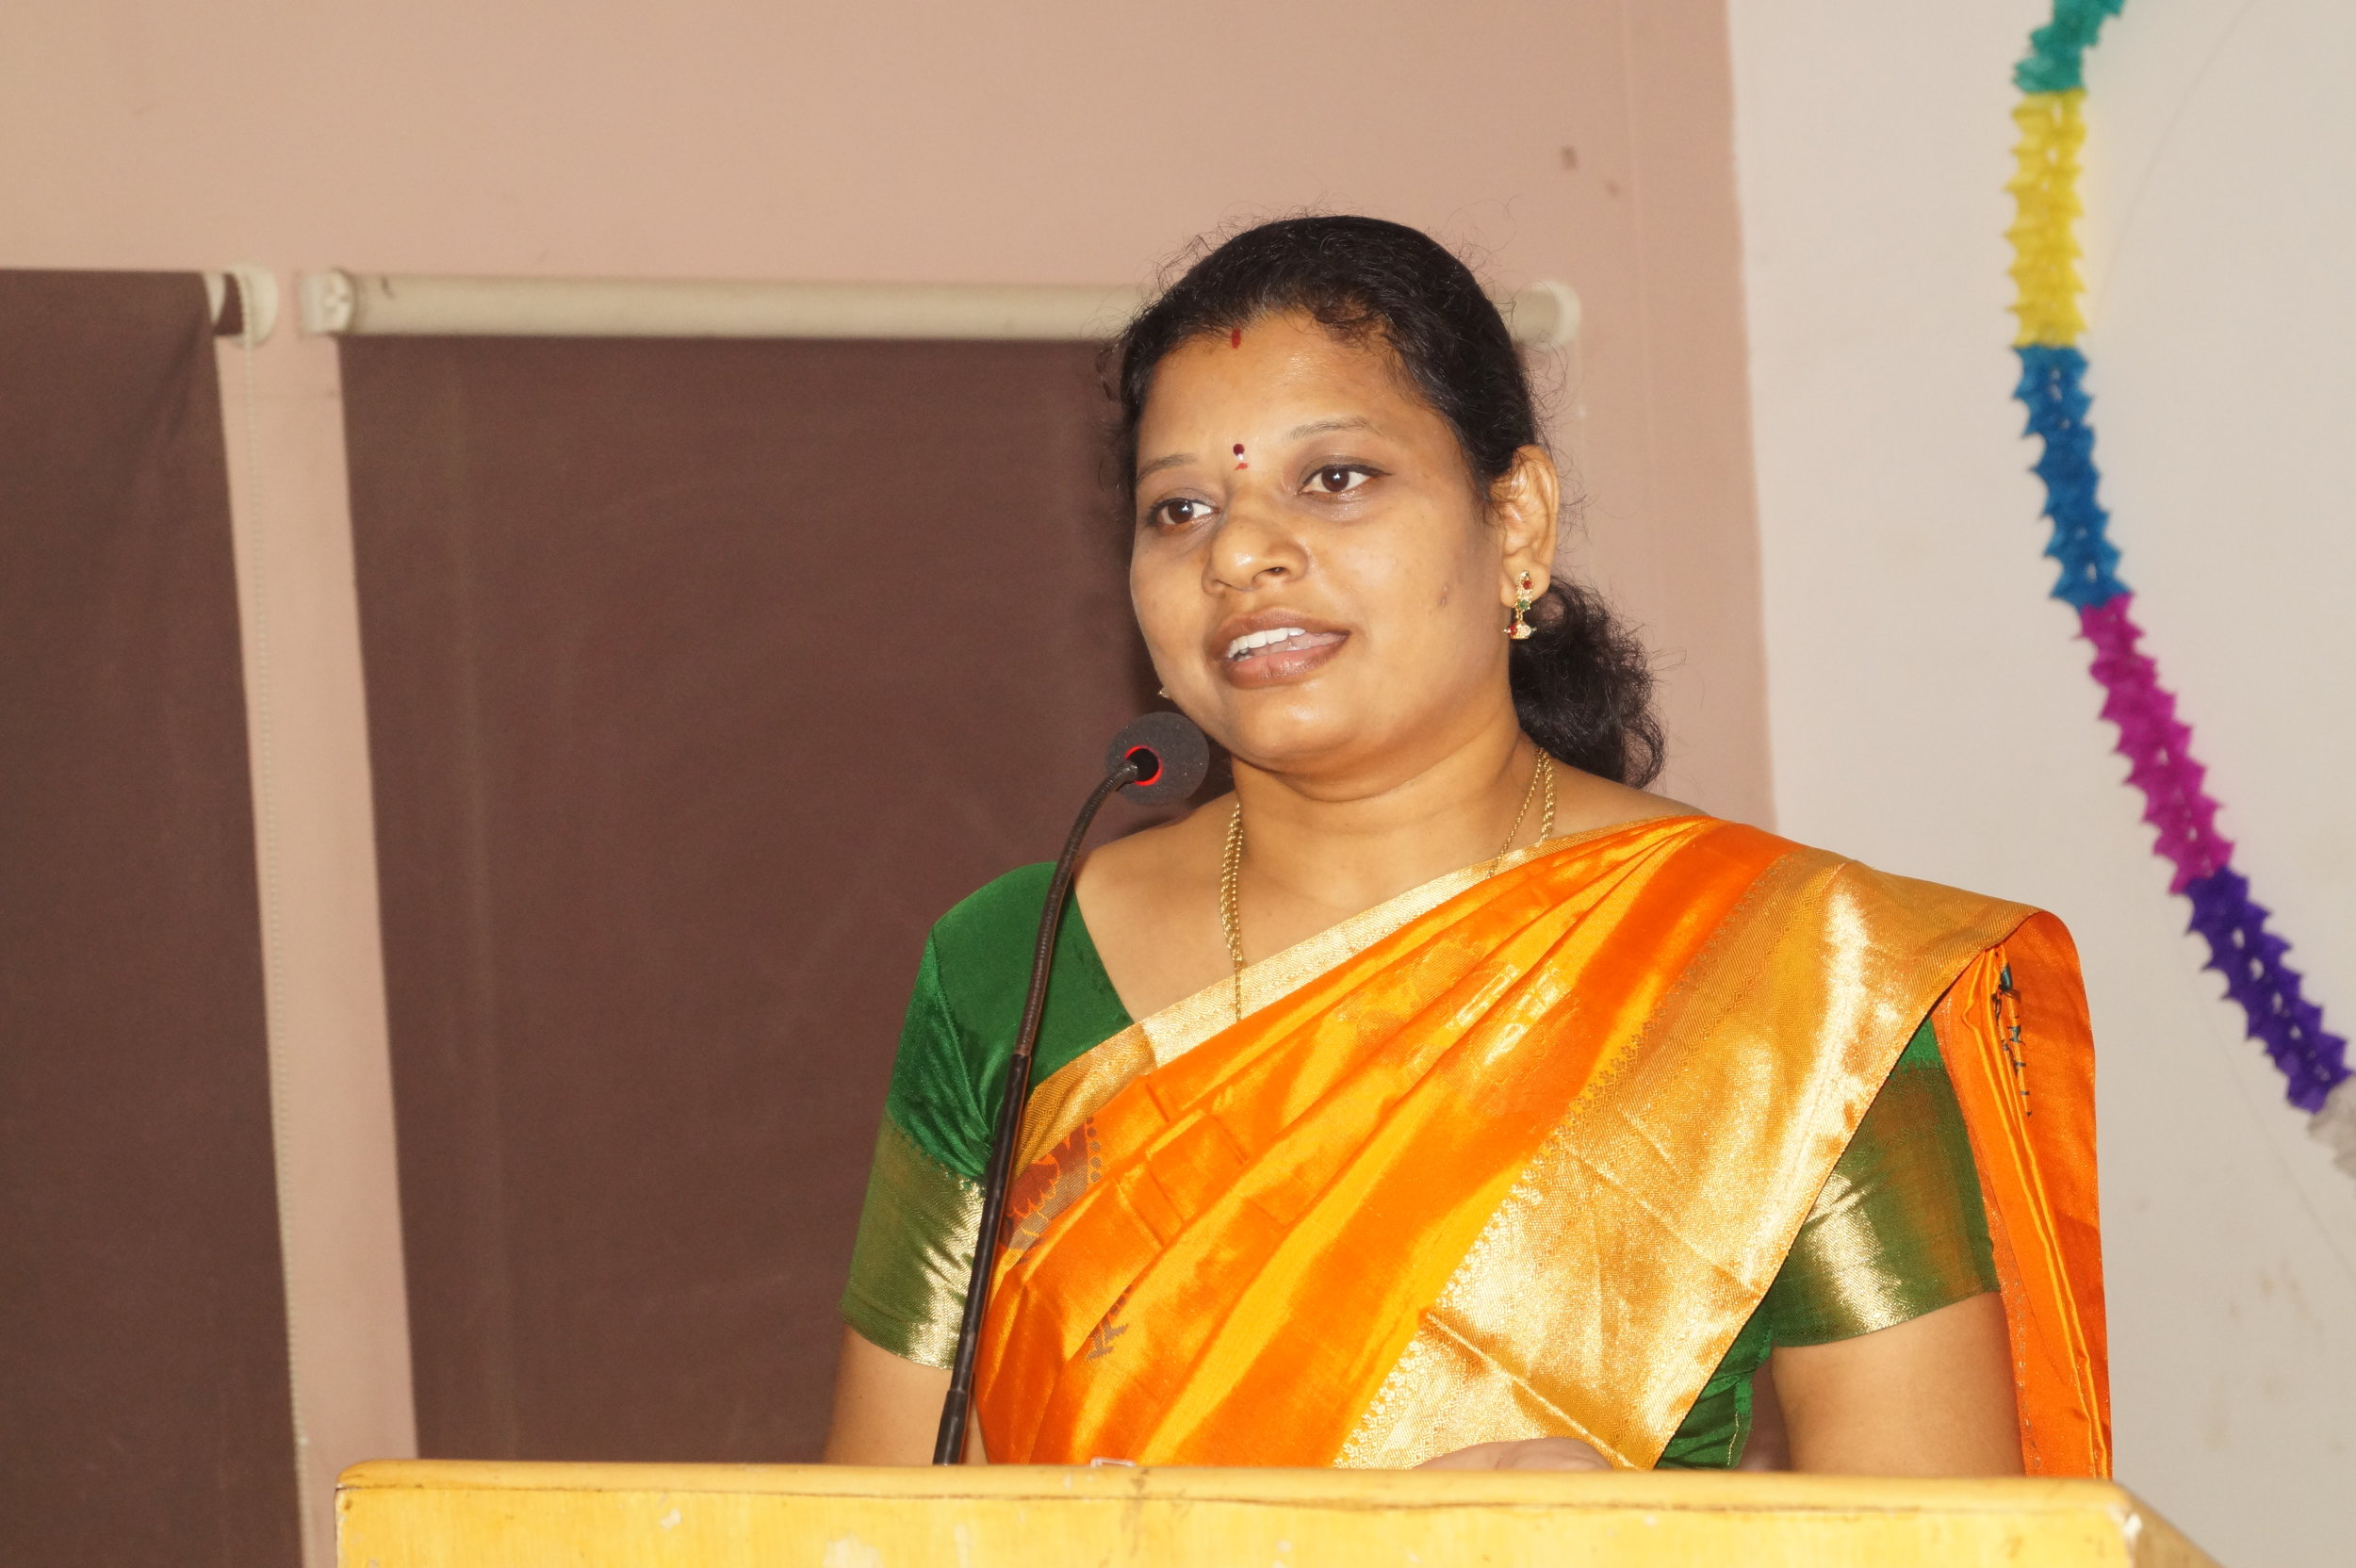 Dr. M.P. Brundha, Professor and Head, addressing the Gathering